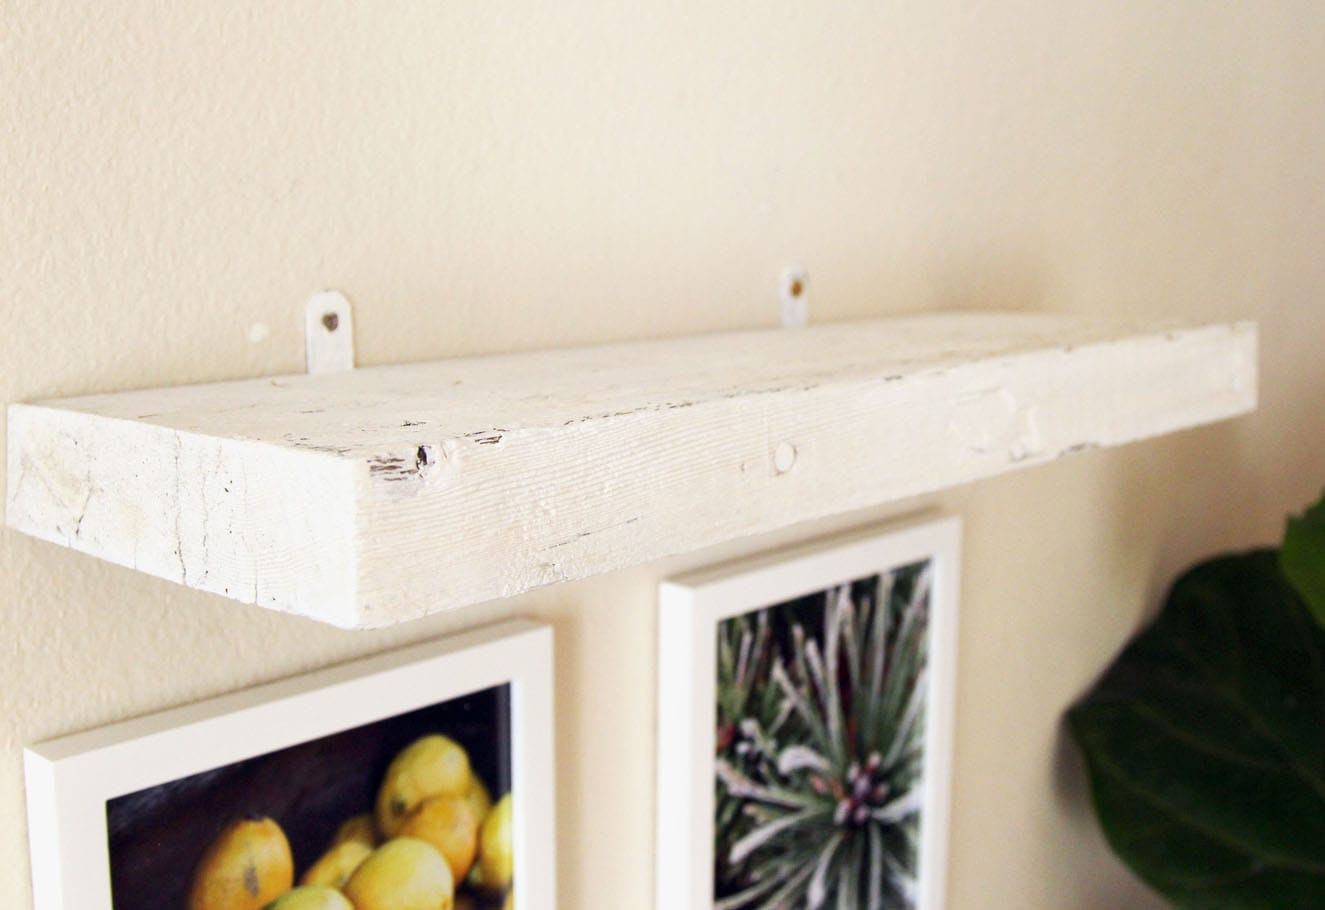 easy faux diy floating shelves minutes piece rainbow wall shelf apieceofrainbow homemade brackets screw the and onto because there are only tiny bits showing very each hide them